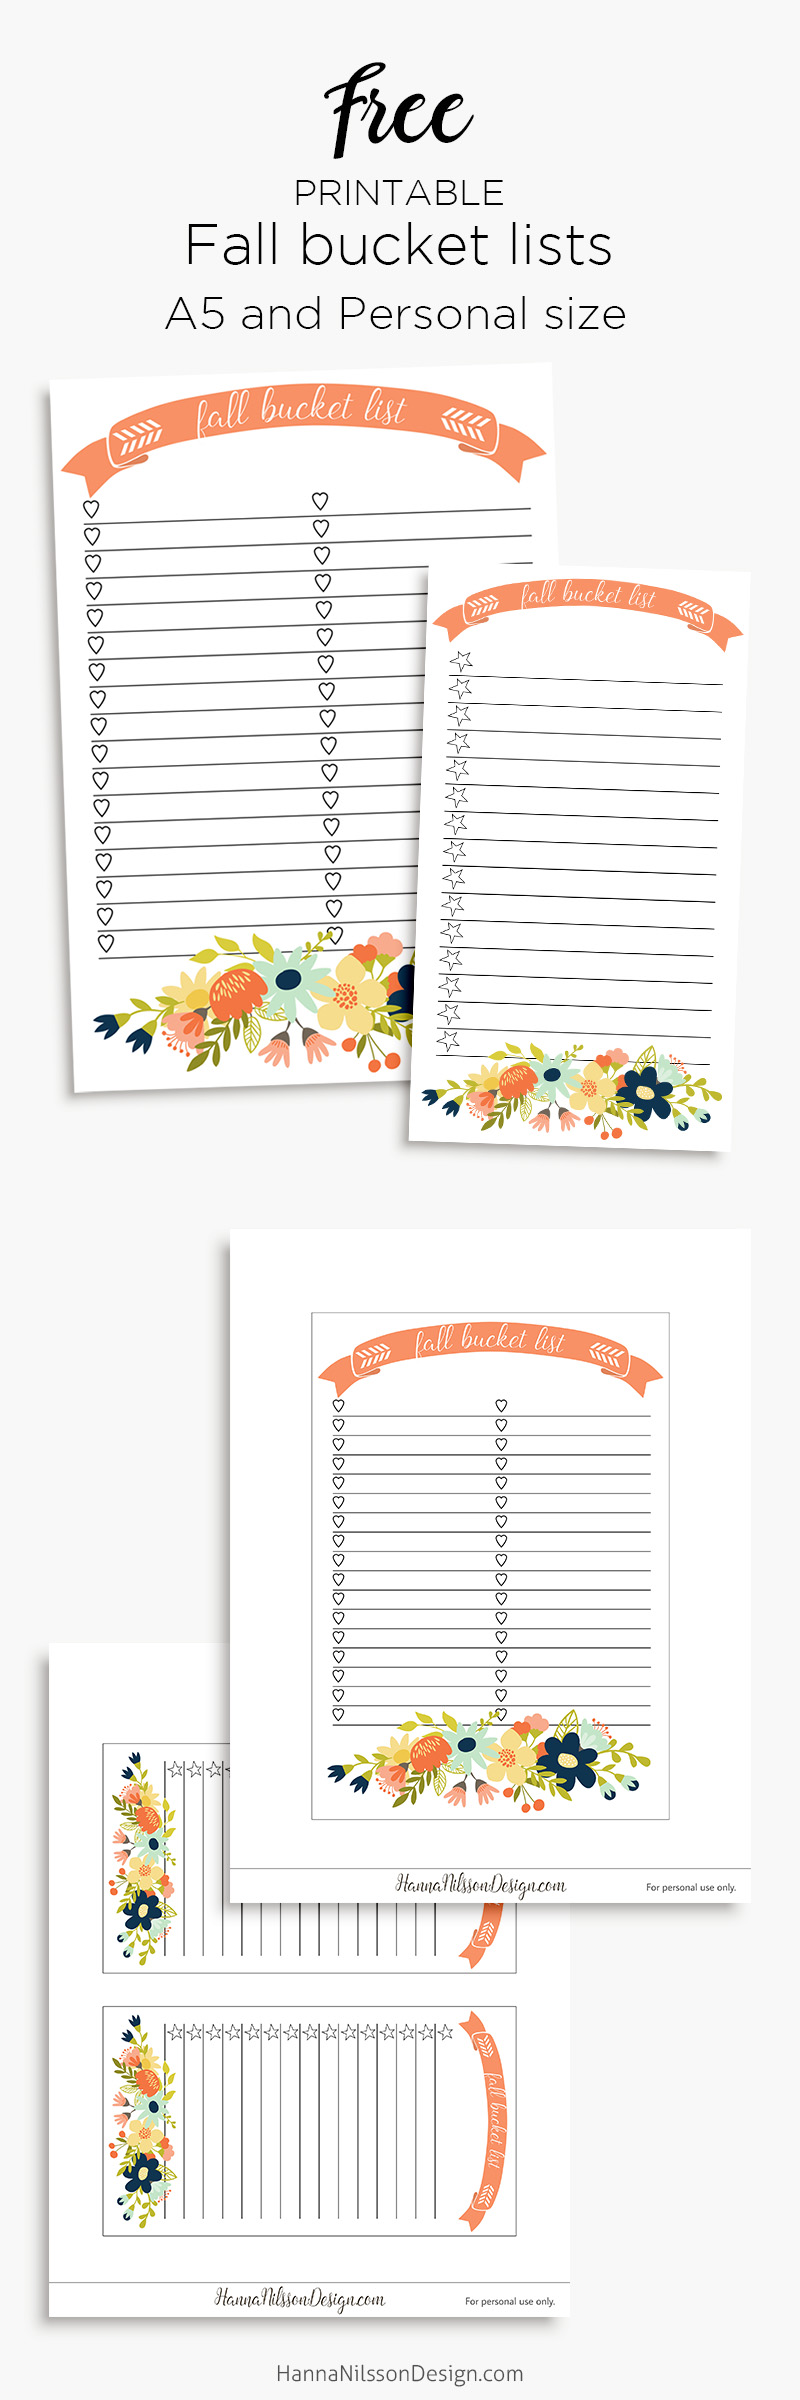 Fall bucket list planner insert | A5 and personal planner printable | #plannerprintable #filofax #fallprintable #bucketlist #A5planner